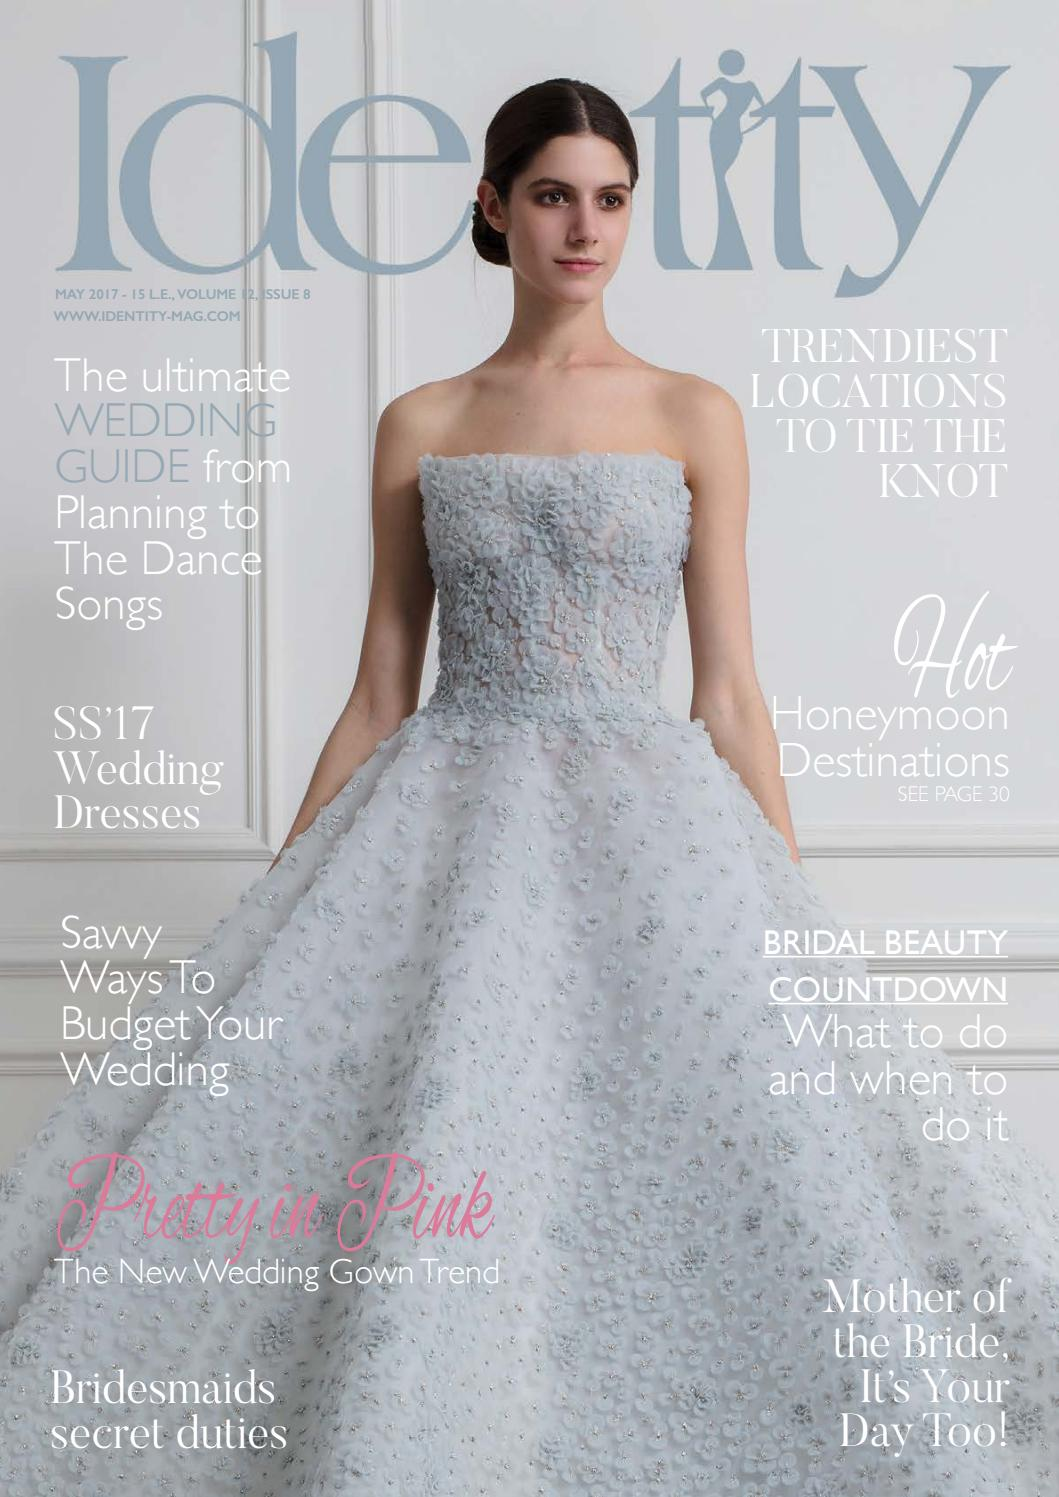 Pretty in Pink - The New Wedding Gown Trend by Identity Magazine - issuu